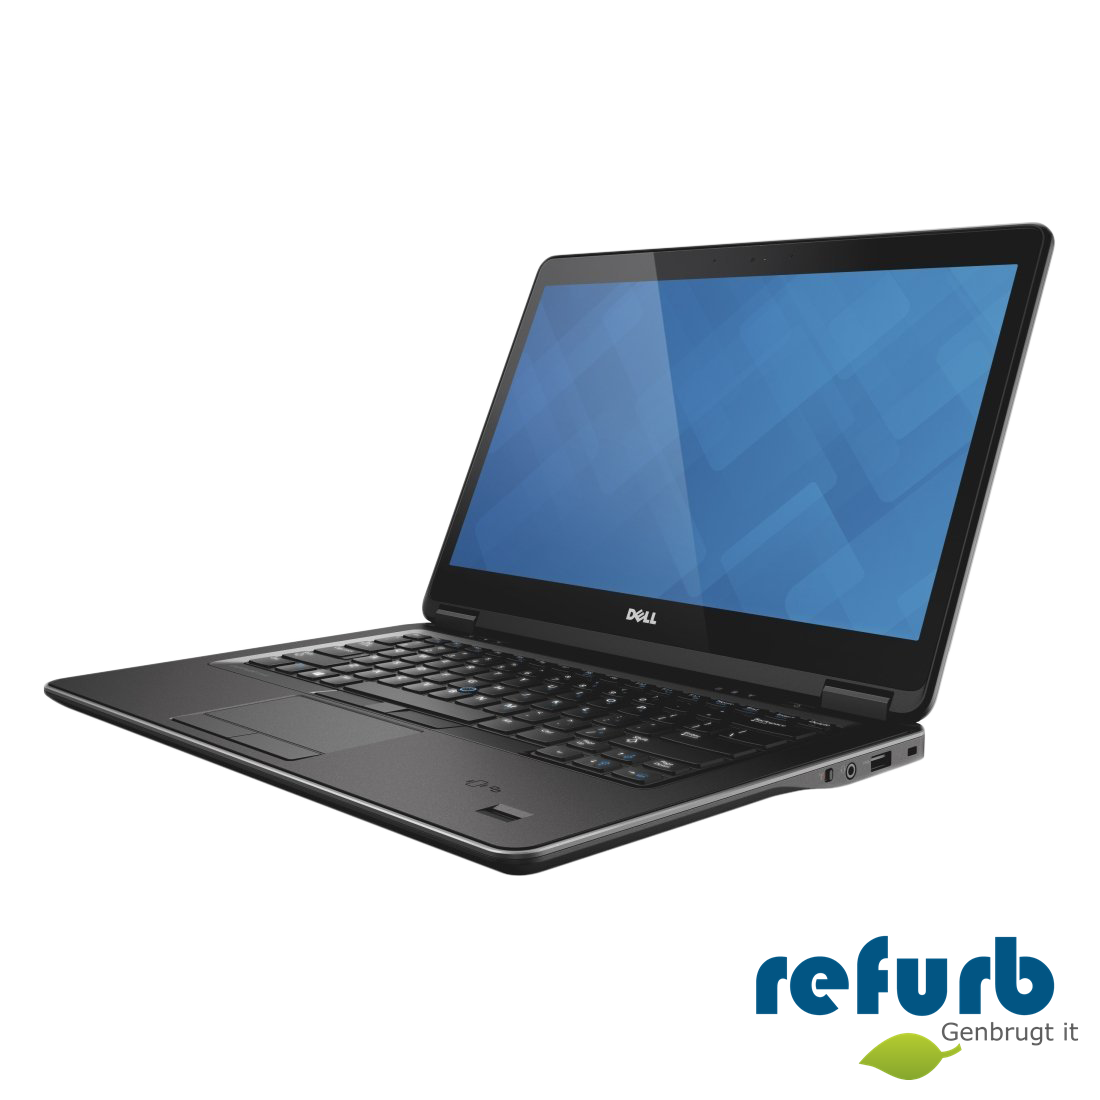 Dell latitude e7440 fra Dell på refurb